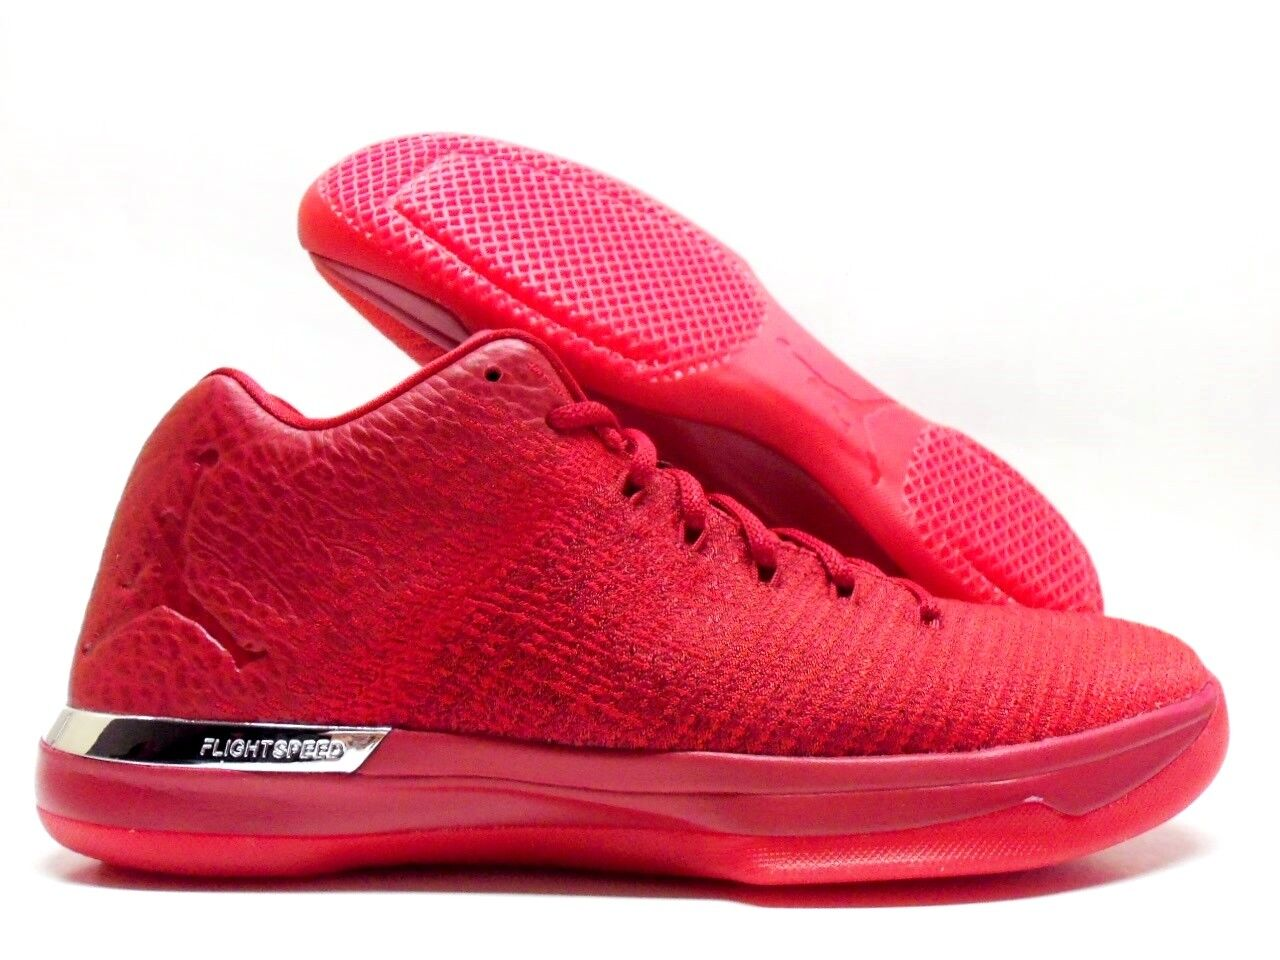 NIKE AIR JORDAN XXXI LOW 31 GYM RED/ACTION RED SIZE MEN'S 10 [897564-601]